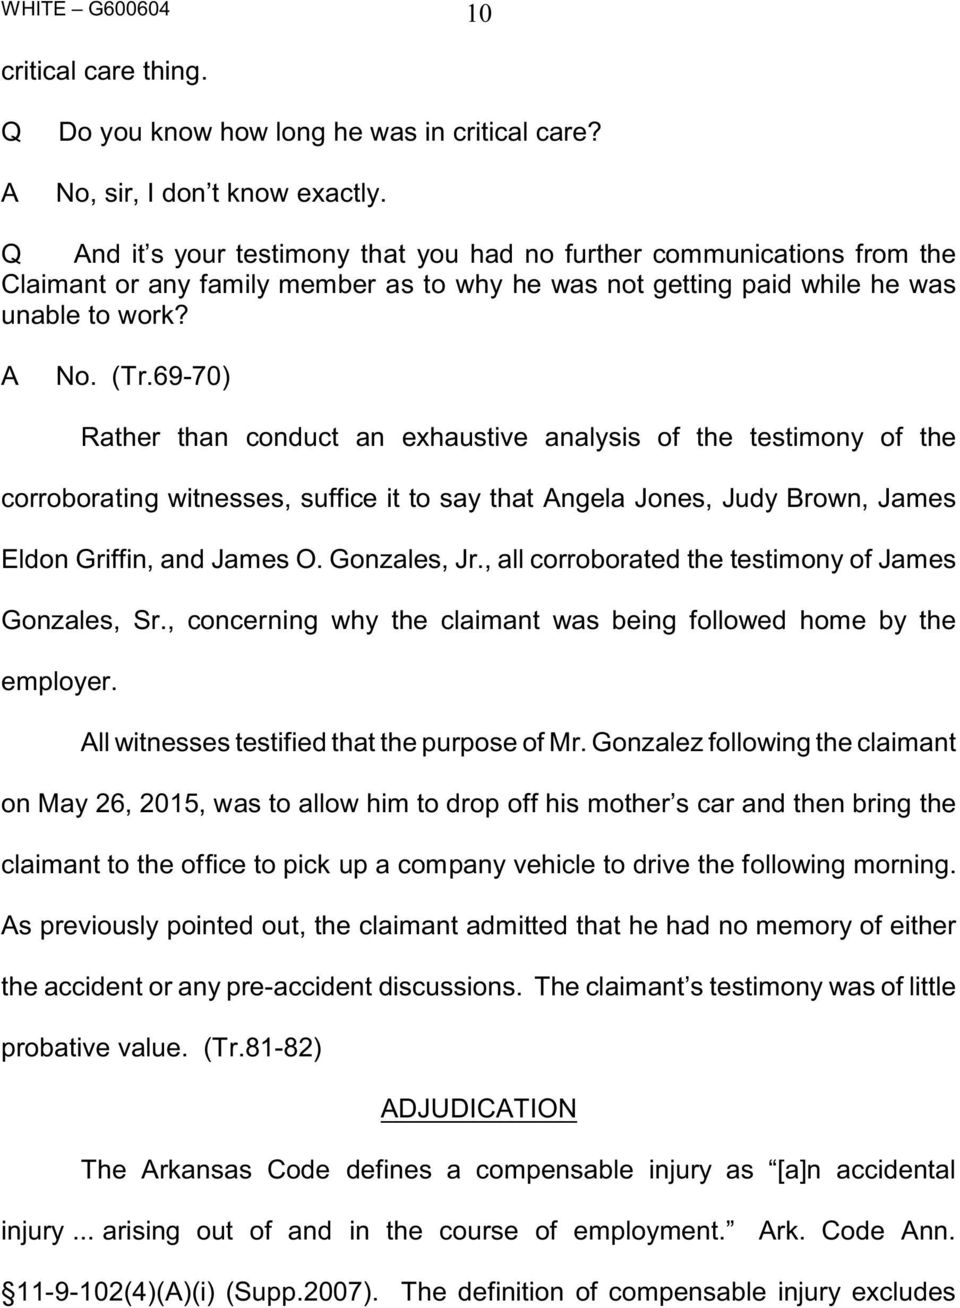 69-70) Rather than conduct an exhaustive analysis of the testimony of the corroborating witnesses, suffice it to say that ngela Jones, Judy Brown, James Eldon Griffin, and James O. Gonzales, Jr.